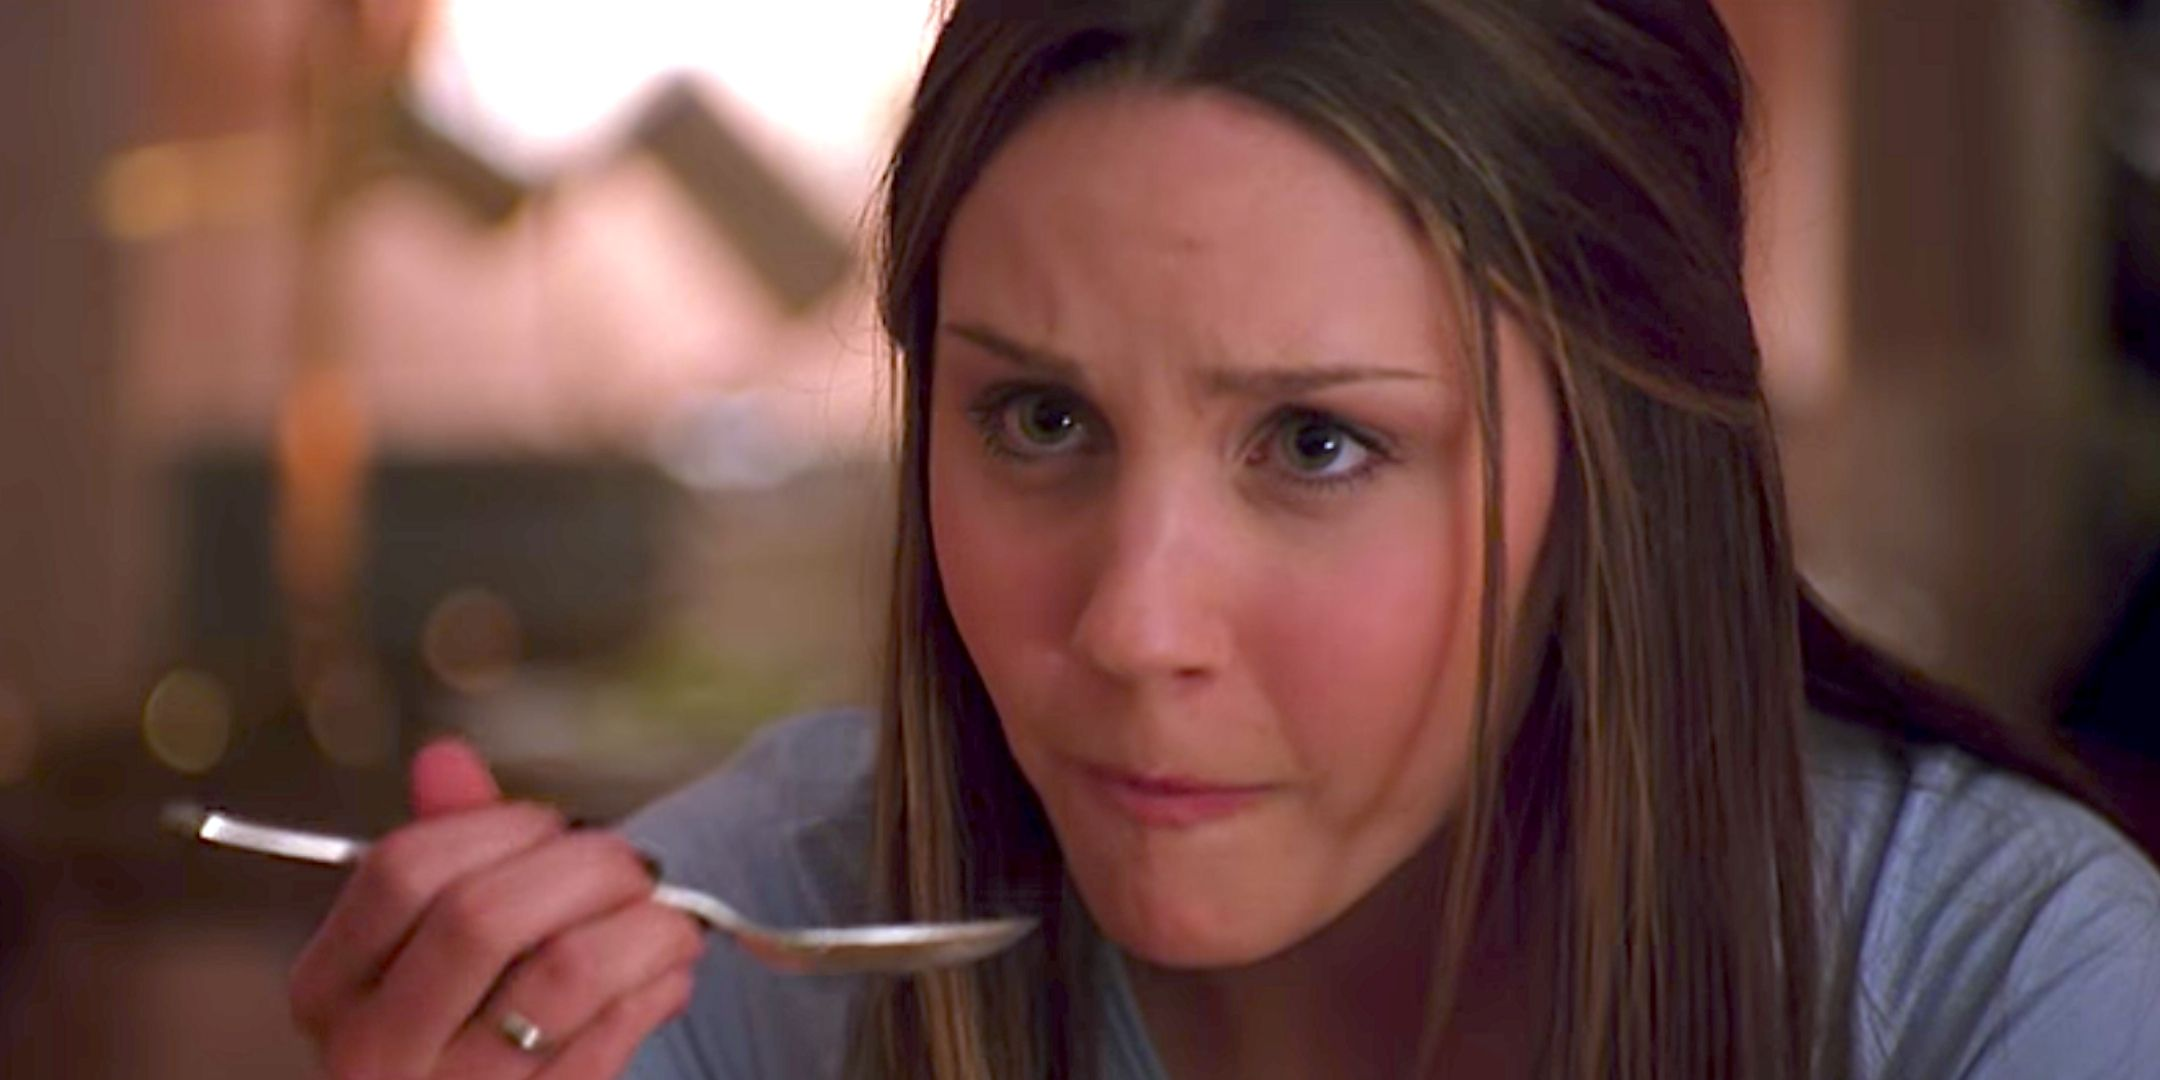 liz, eating, spoon, food, cooking, surprised, Amanda Bynes, brunette, what a girl wants, hero